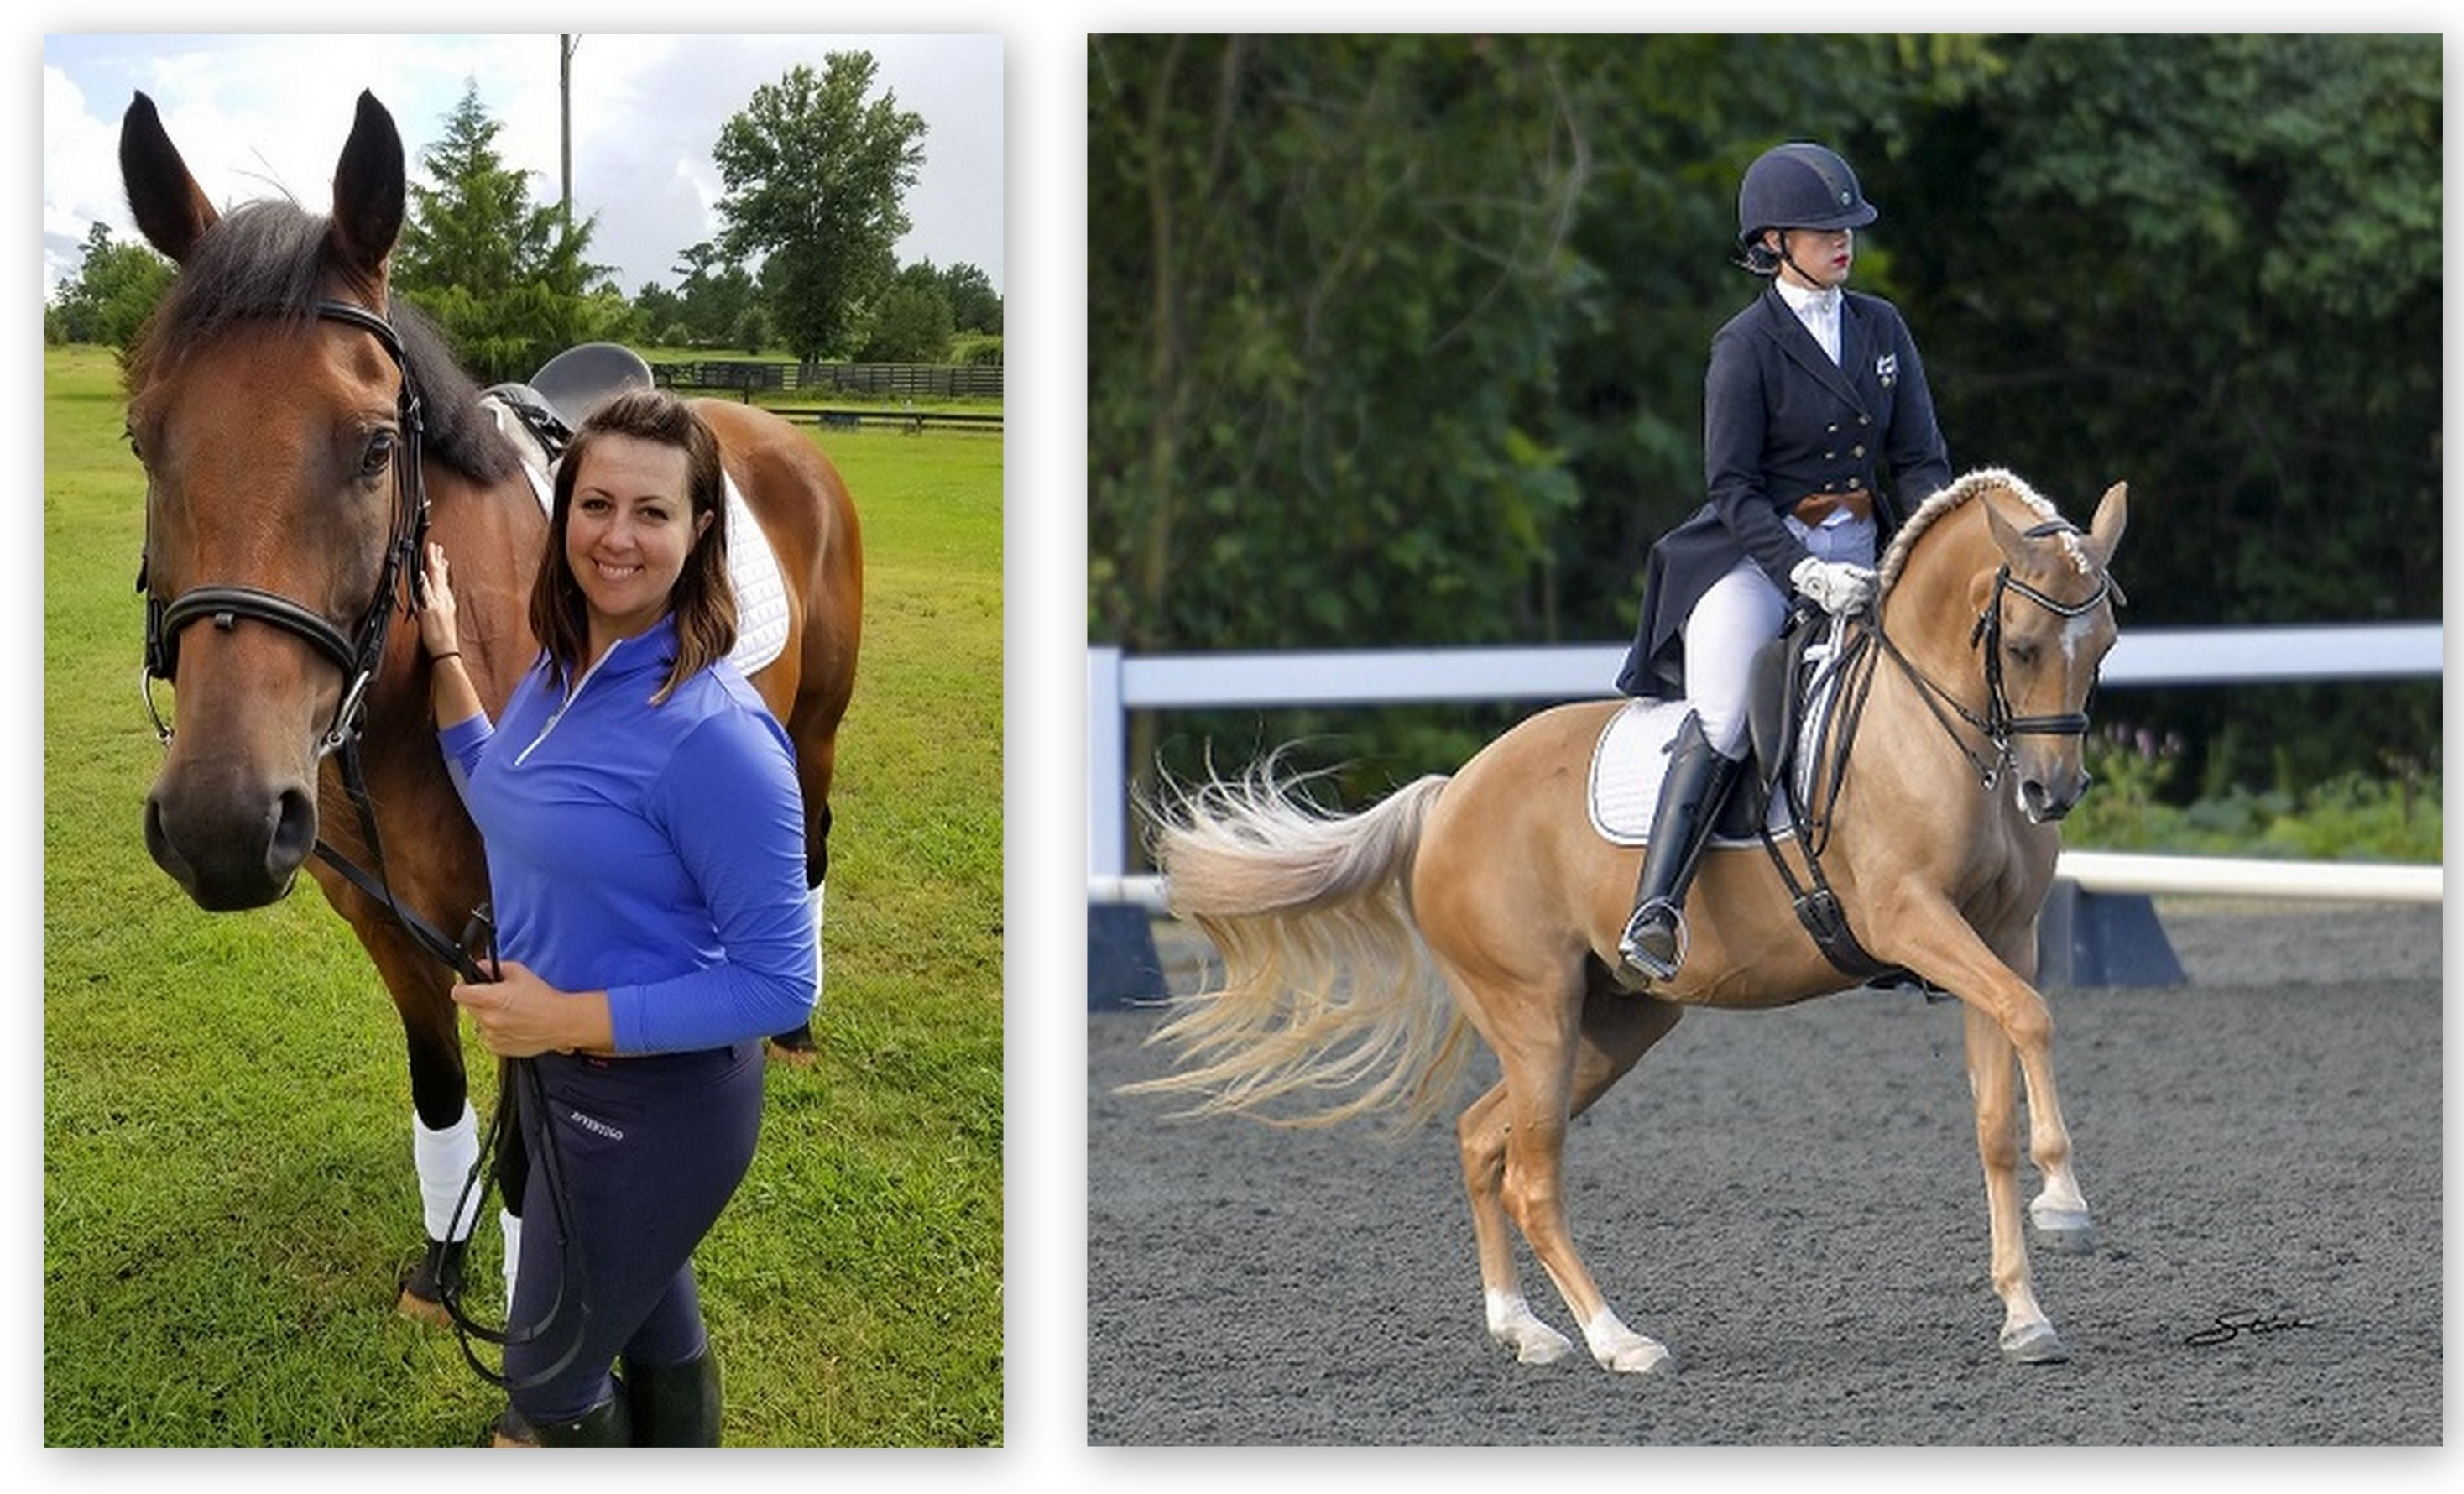 TDF Awards Continuing Education Grants To Two Dressage Instructors